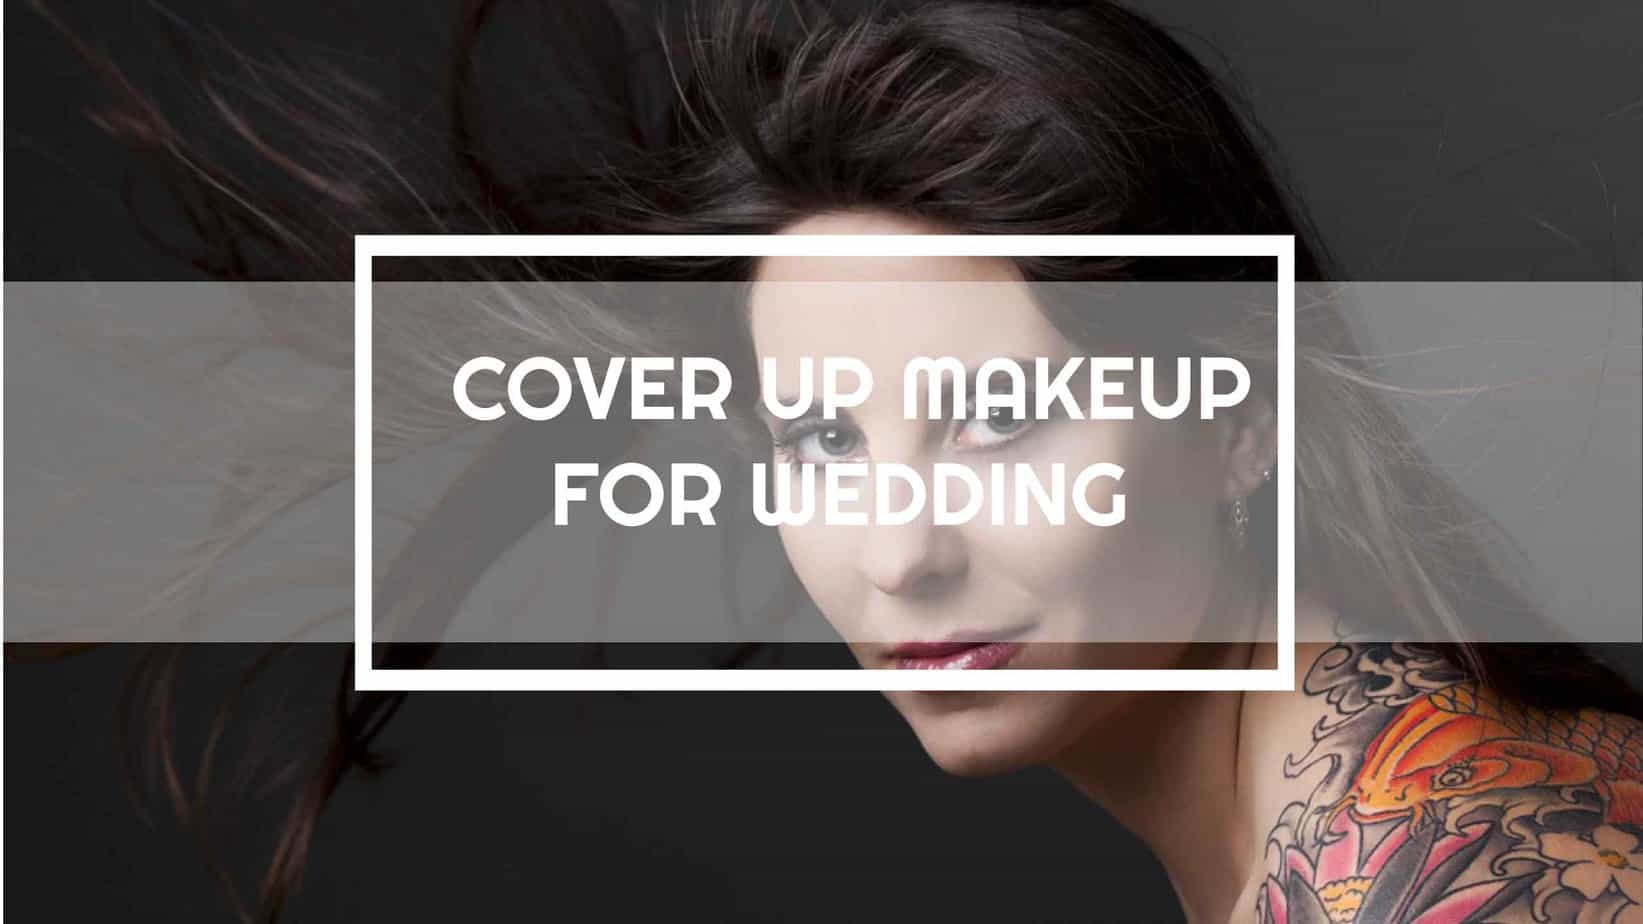 TATTOO COVER UP MAKEUP FOR WEDDING